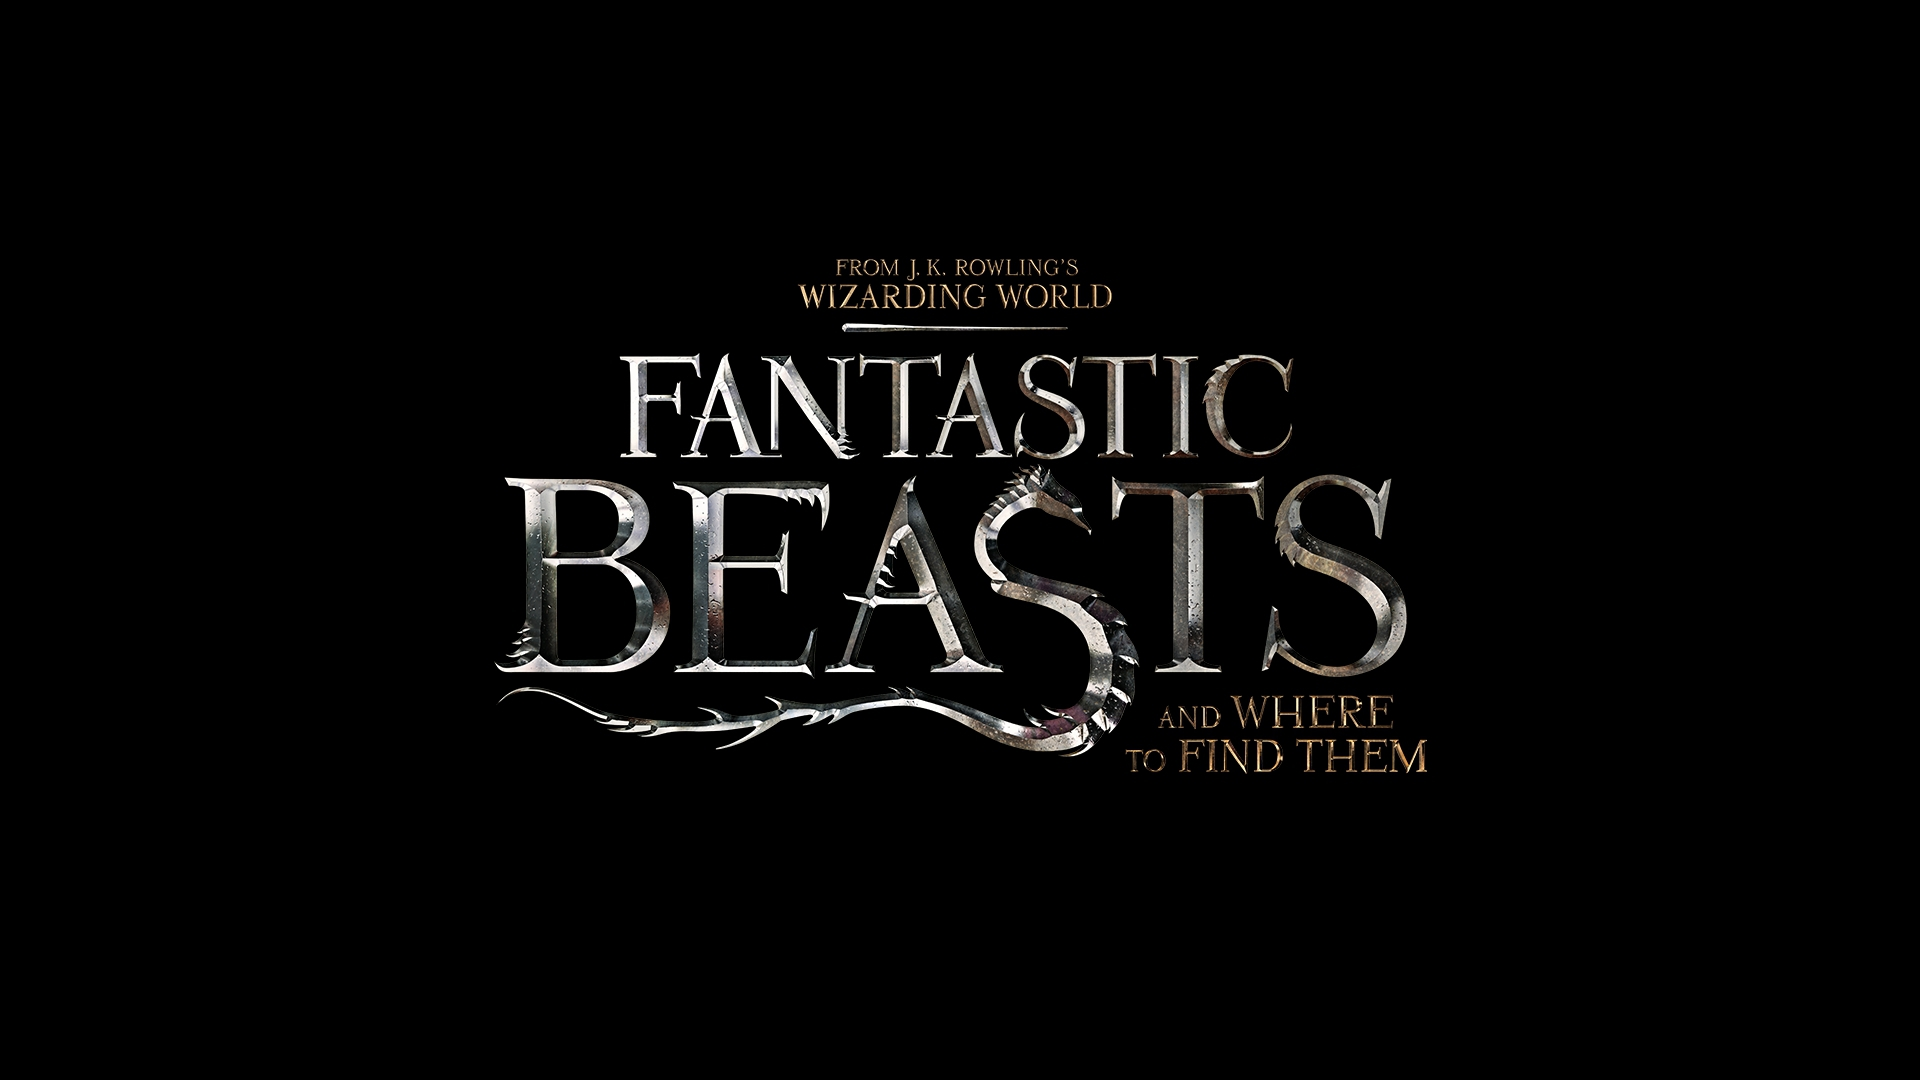 Fantastic Beasts And Where To Find Them Wallpaper 4